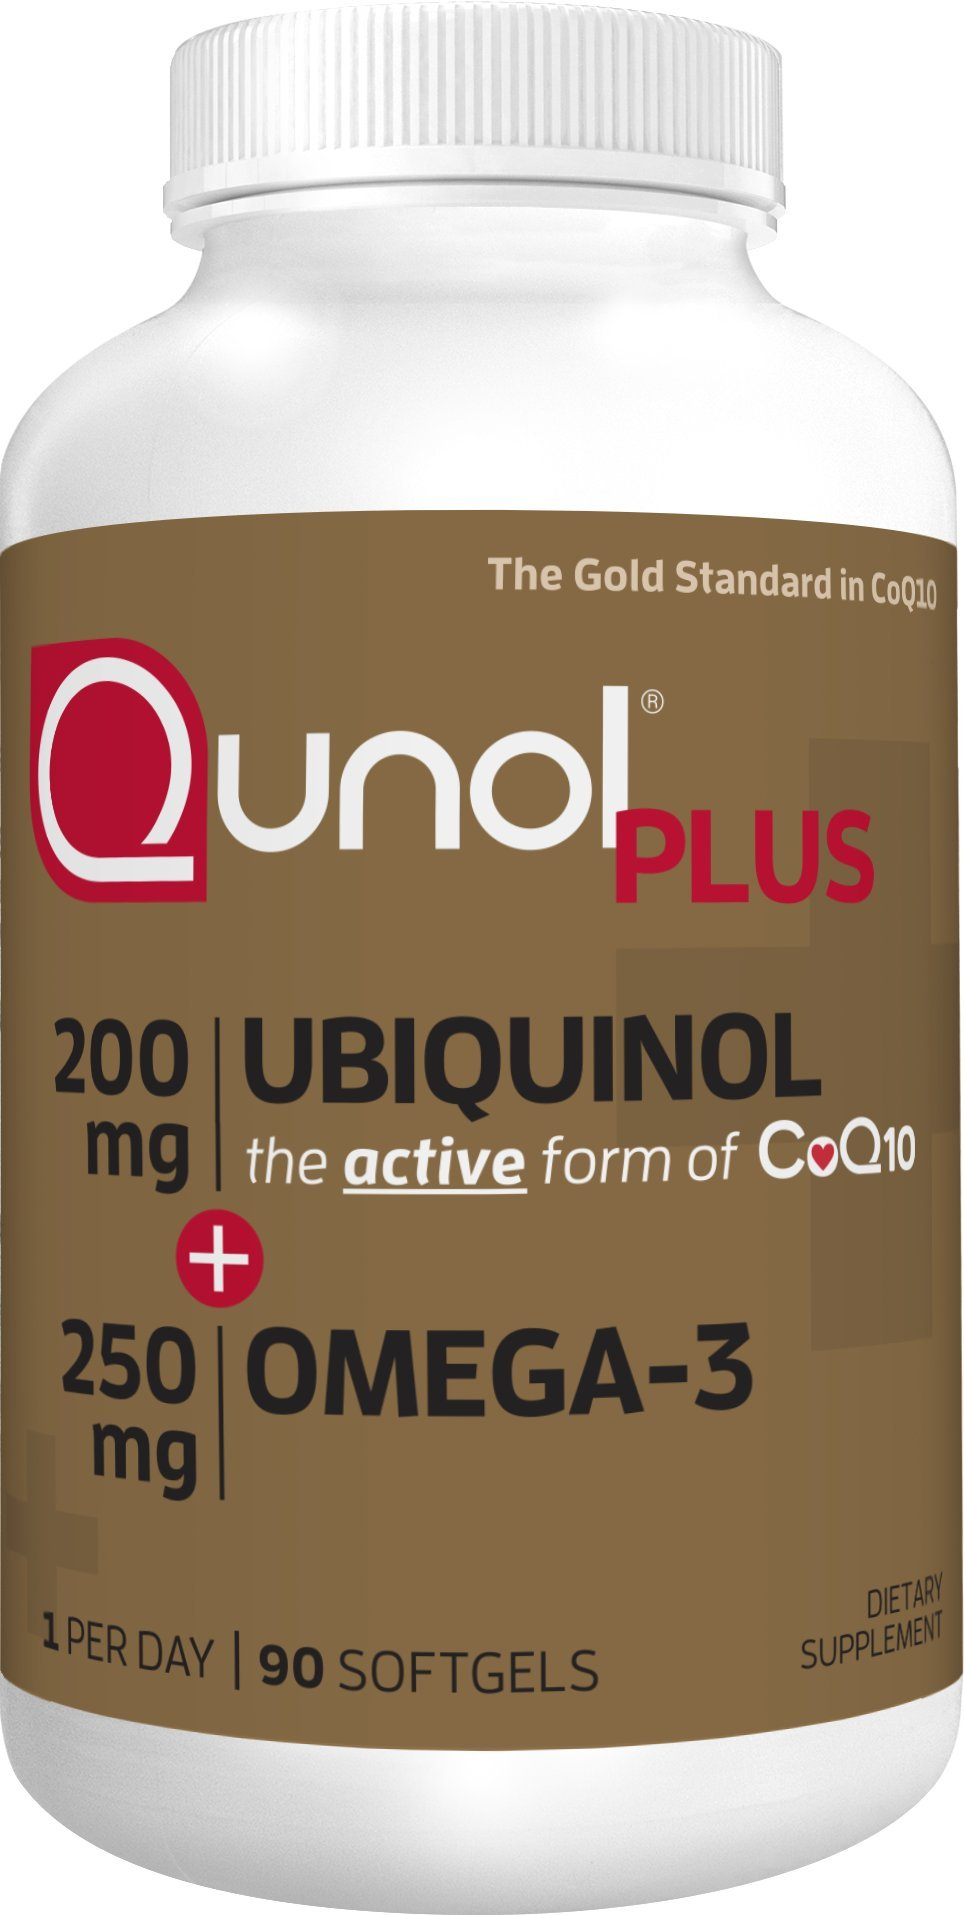 Qunol Ubiquinol + Omega 3 Plus CoQ10 200mg, Extra Strength Ubiquinol Plus DHA and EPA for Heart and Vascular Health, Natural Supplement Active Form of CoQ10, Powerful Antioxidant, 90 Count